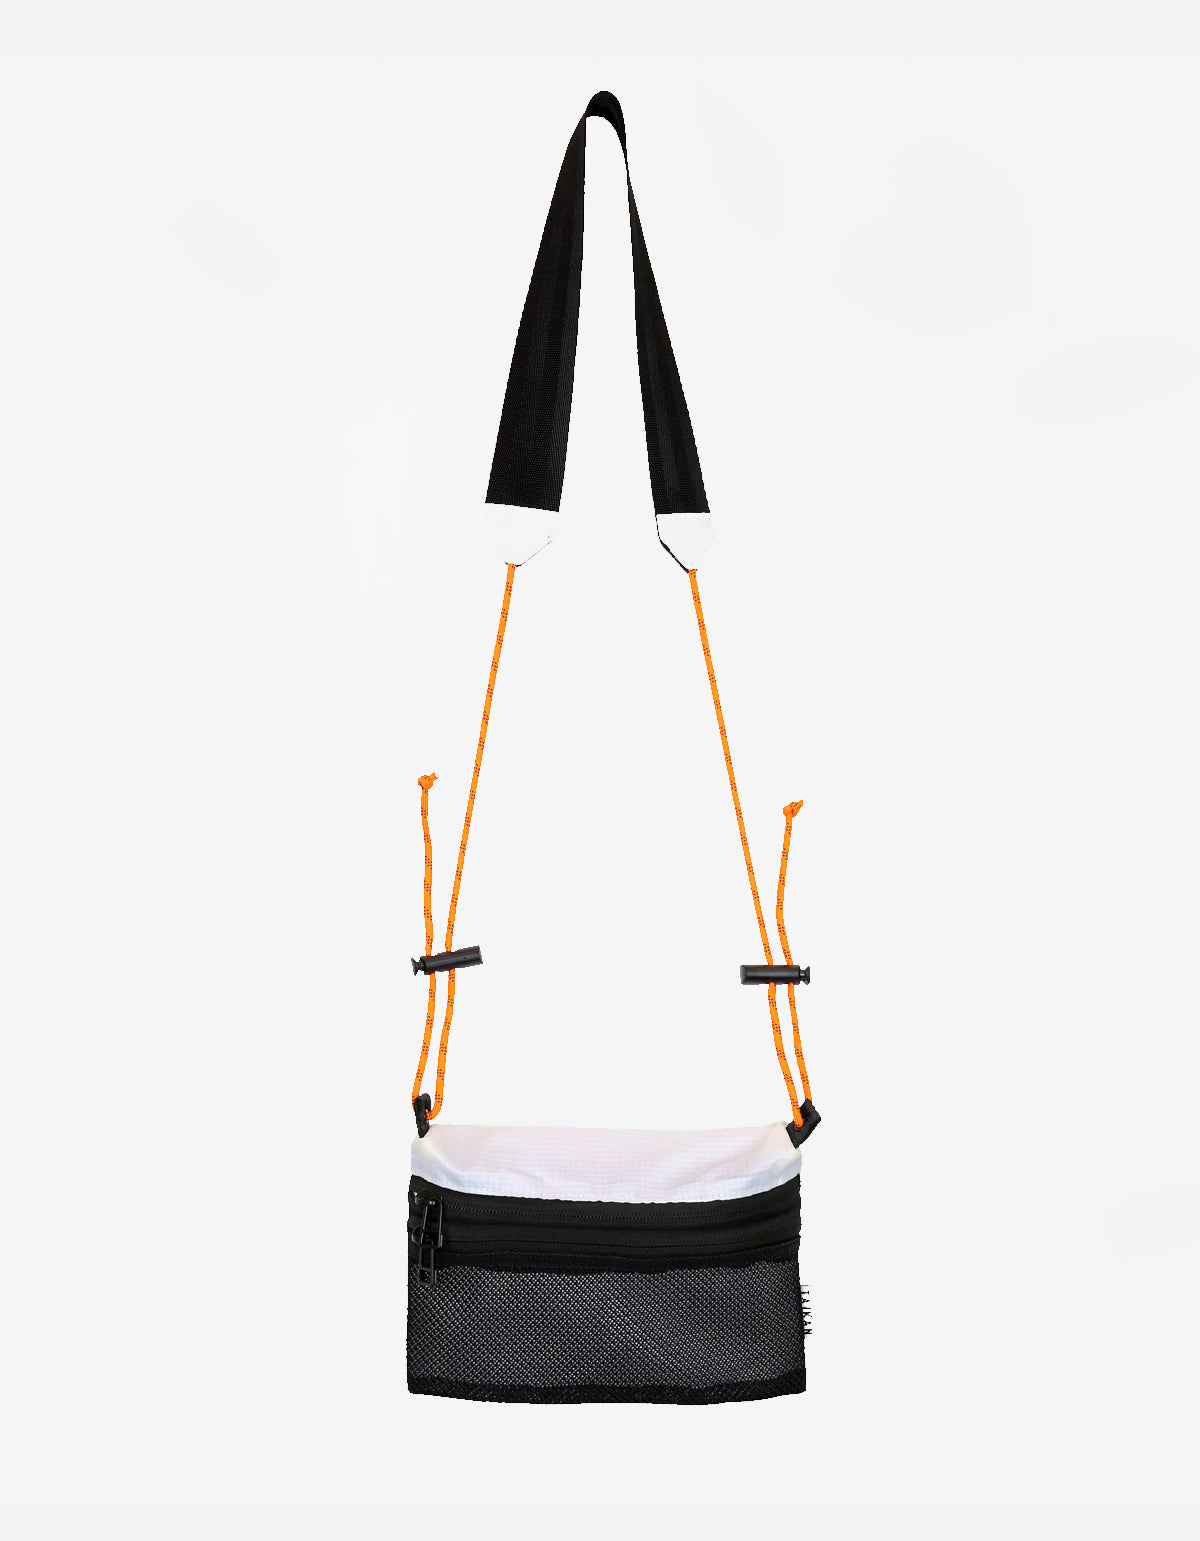 Taikan Small Sacoche Bag White Black Orange